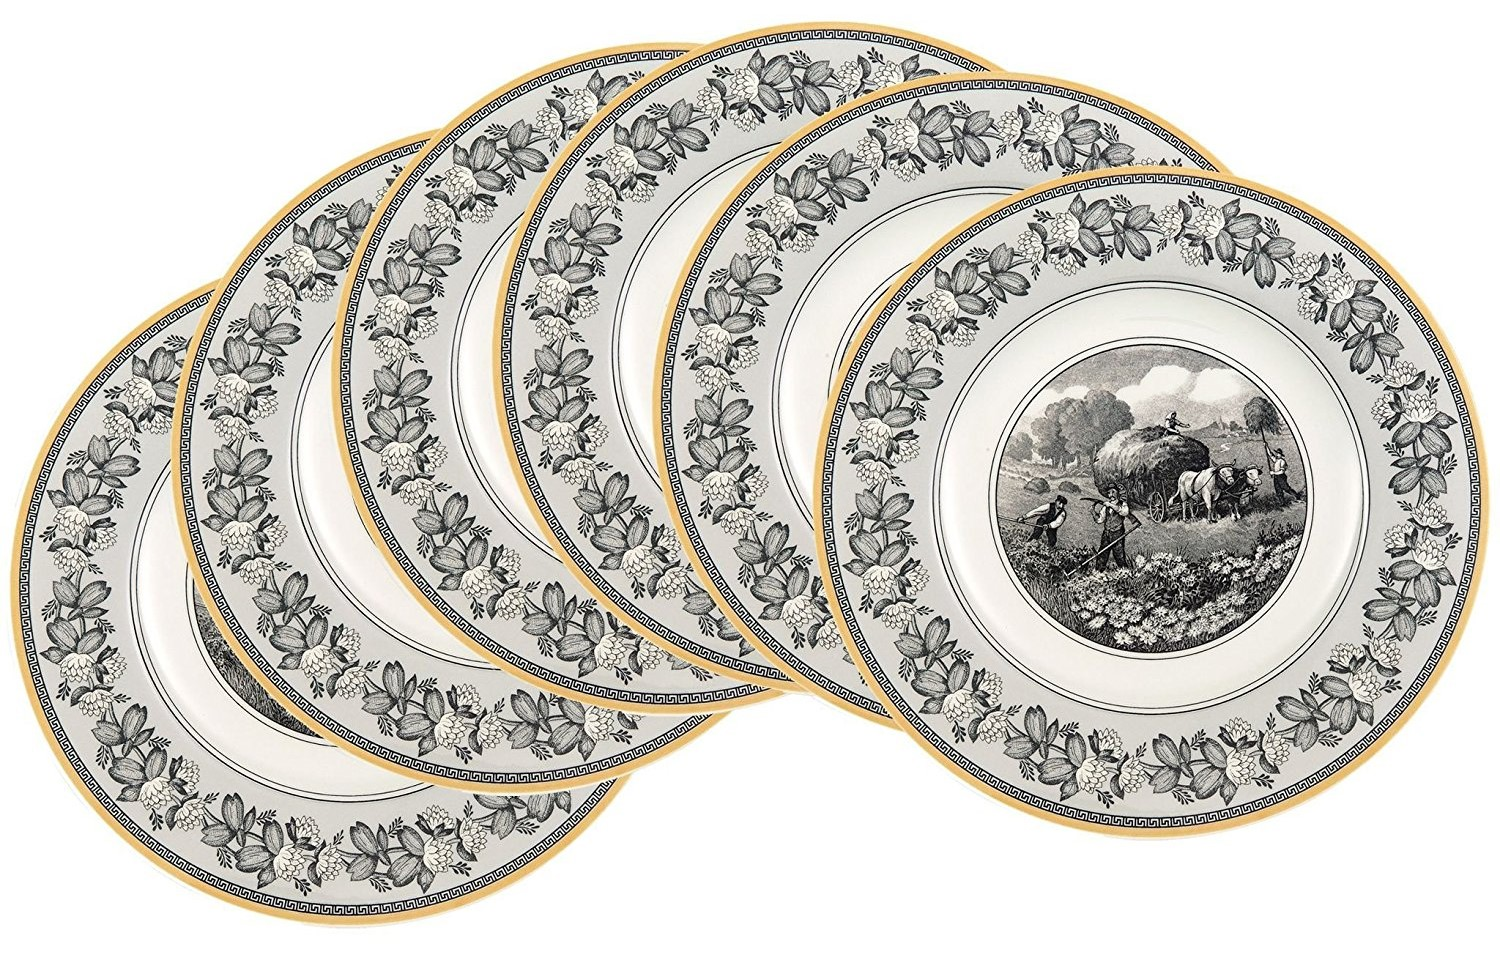 Best Whimsical, Unique, & Fun Dinnerware - The Kitchen Witches